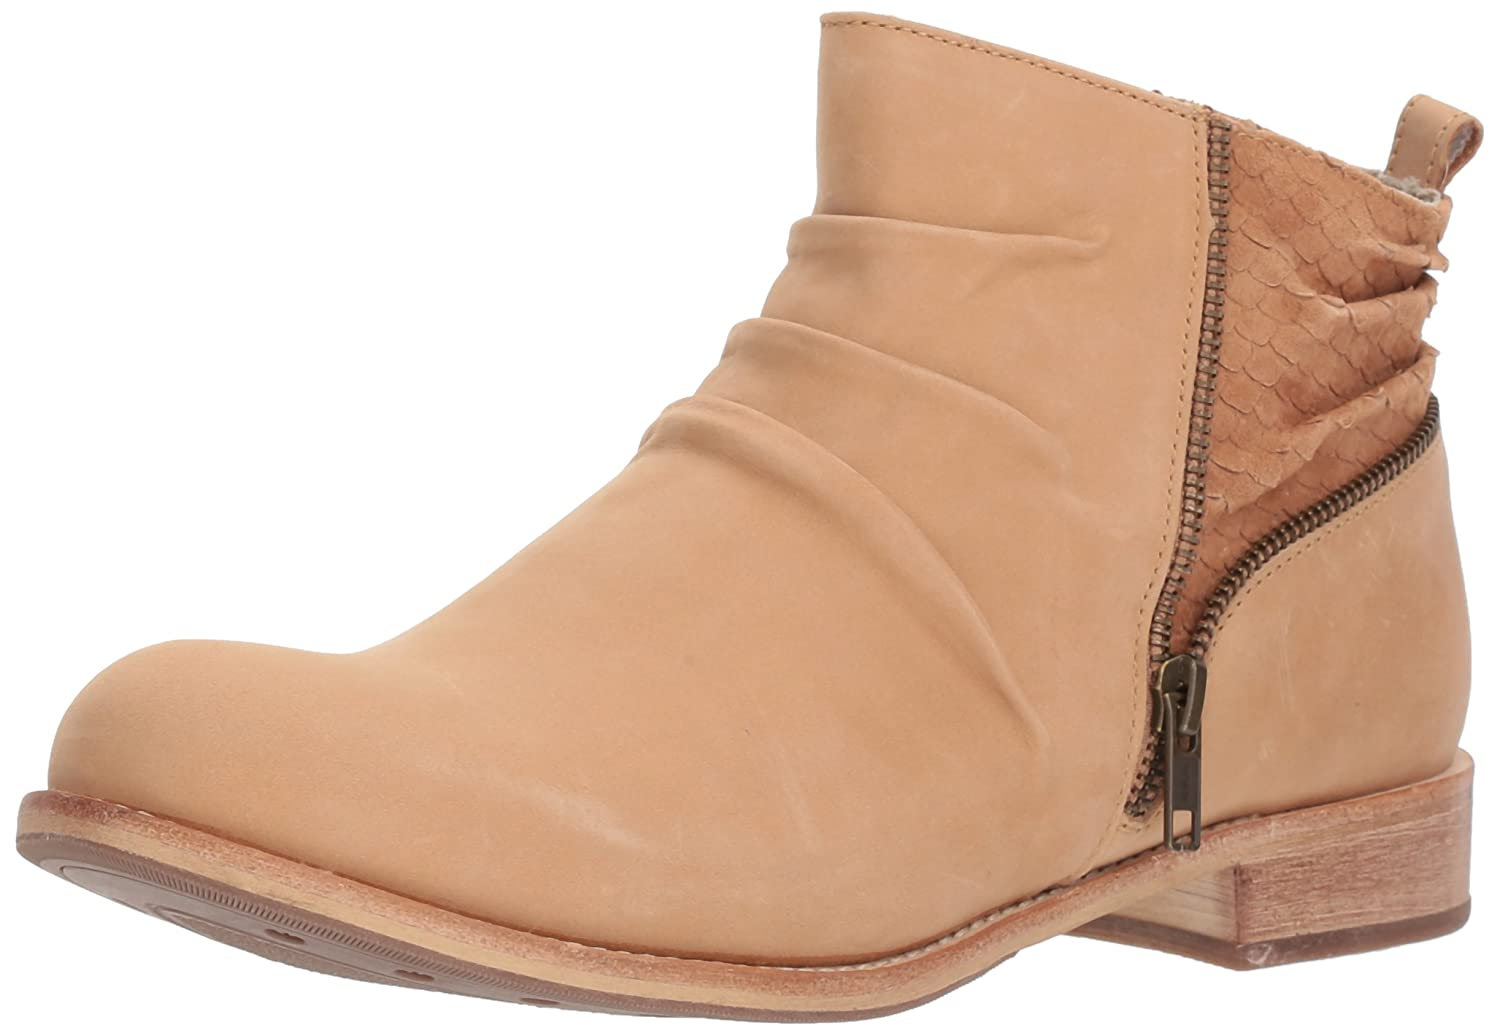 Caterpillar Women's Kiley Fashion Bootie Ankle Boot B072QB56GM 10 B(M) US|Tan